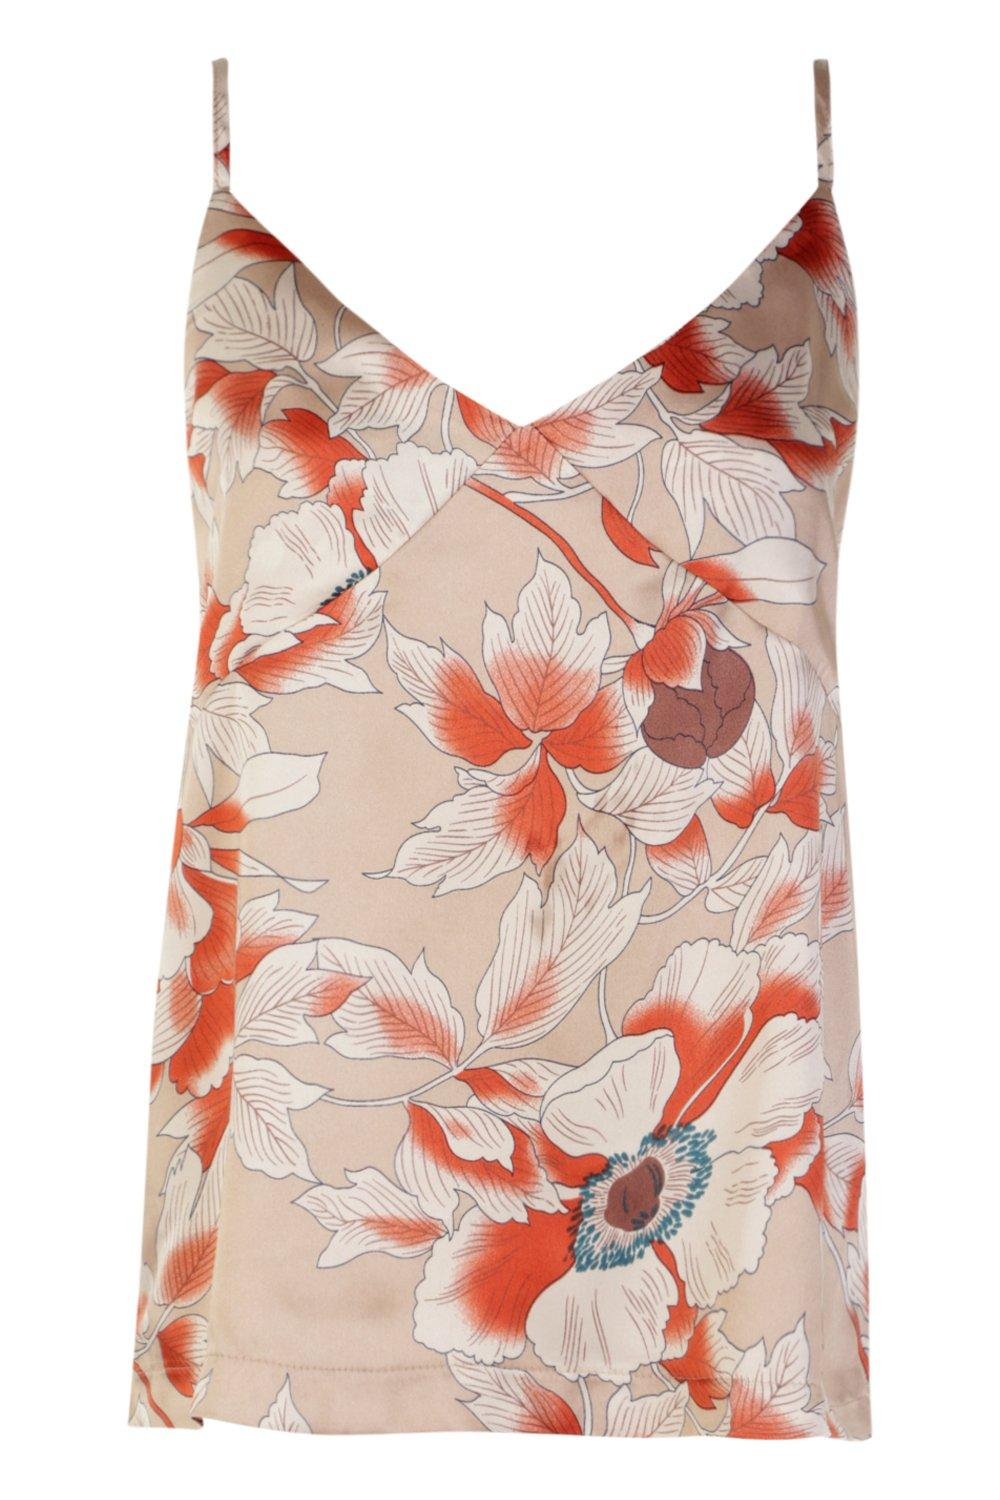 stone Top Floral Cami stone Floral Cami Premium Top Premium Floral Premium vf5qB0w